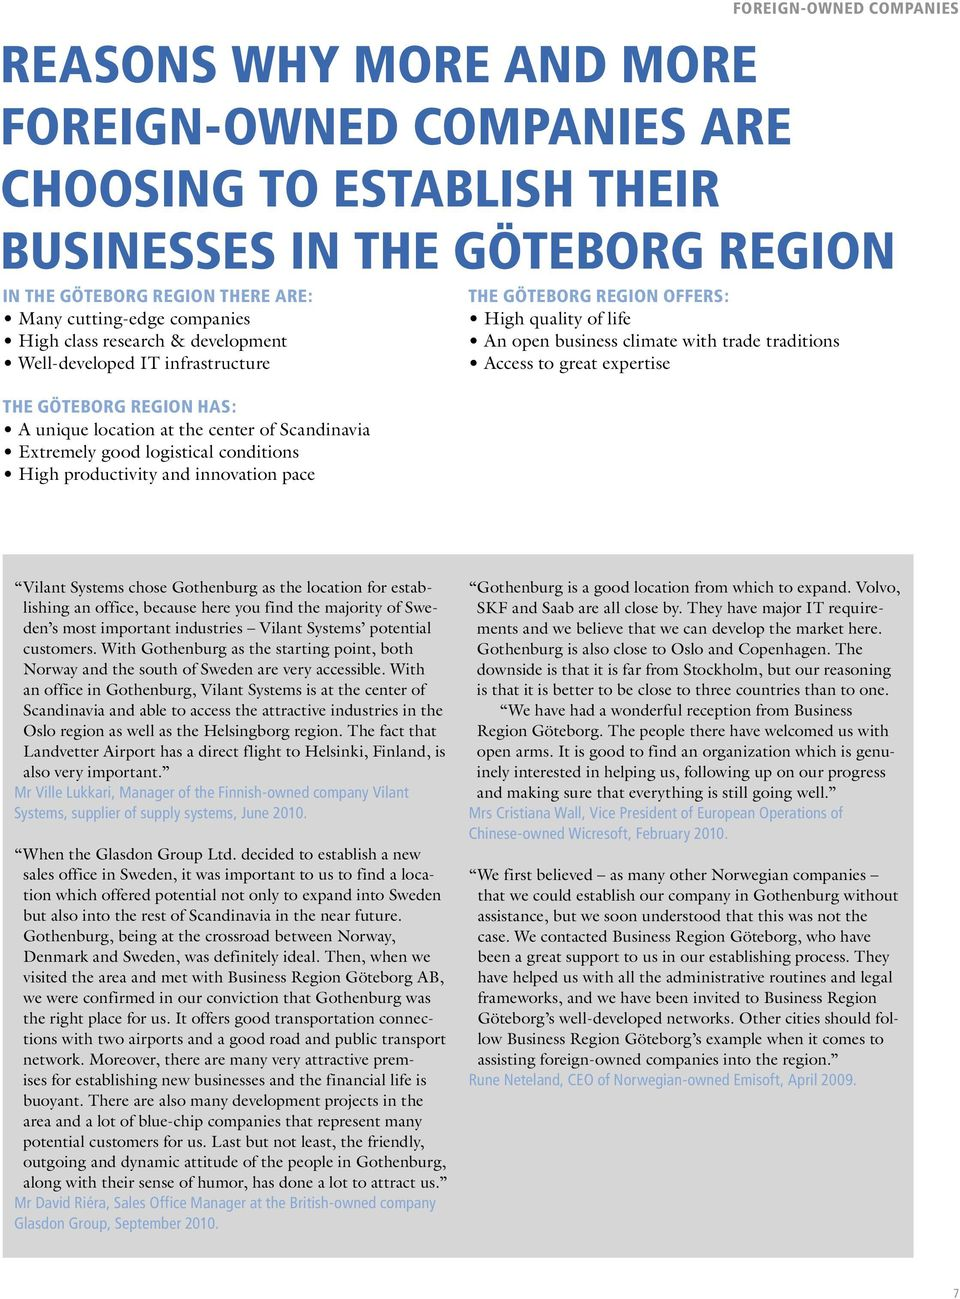 GÖTEBORG REGION OFFERS: High quality of life An open business climate with trade traditions Access to great expertise FOREIGN-OWNED COMPANIES Vilant Systems chose Gothenburg as the location for